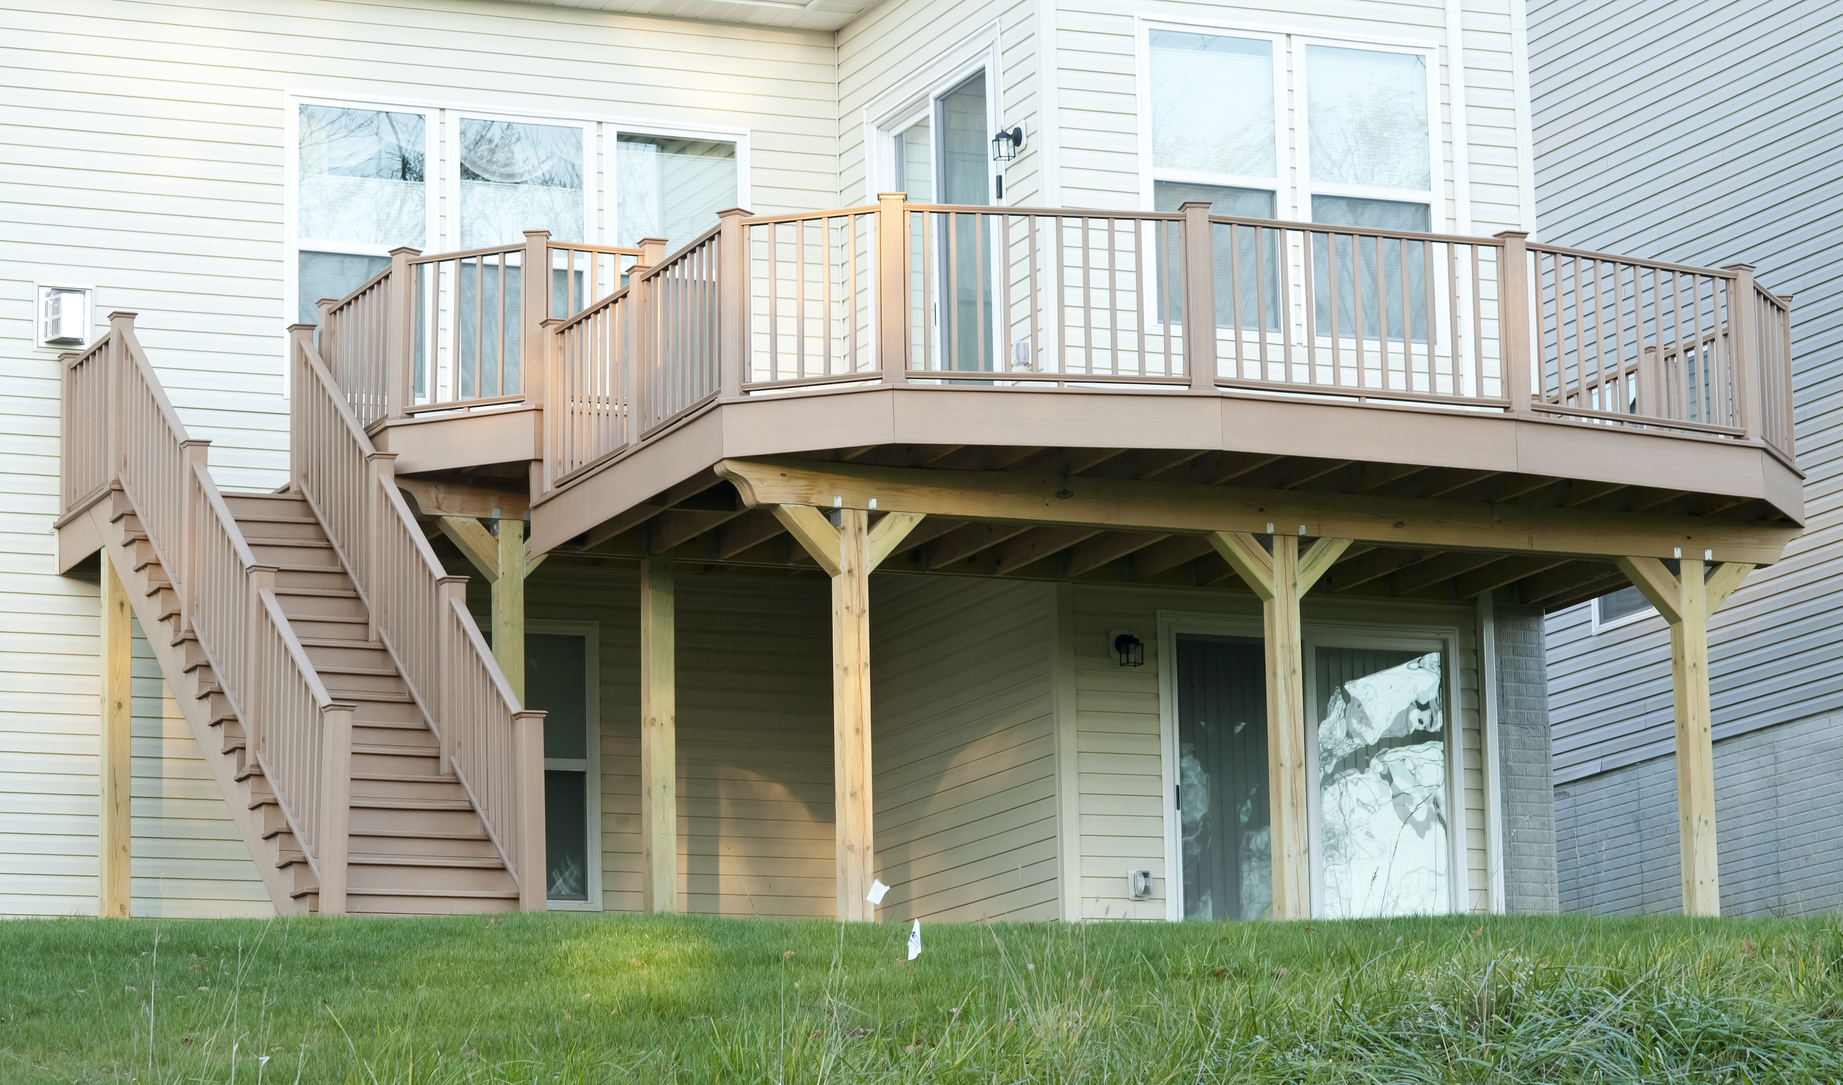 Planning the Perfect Deck: Questions and Considerations